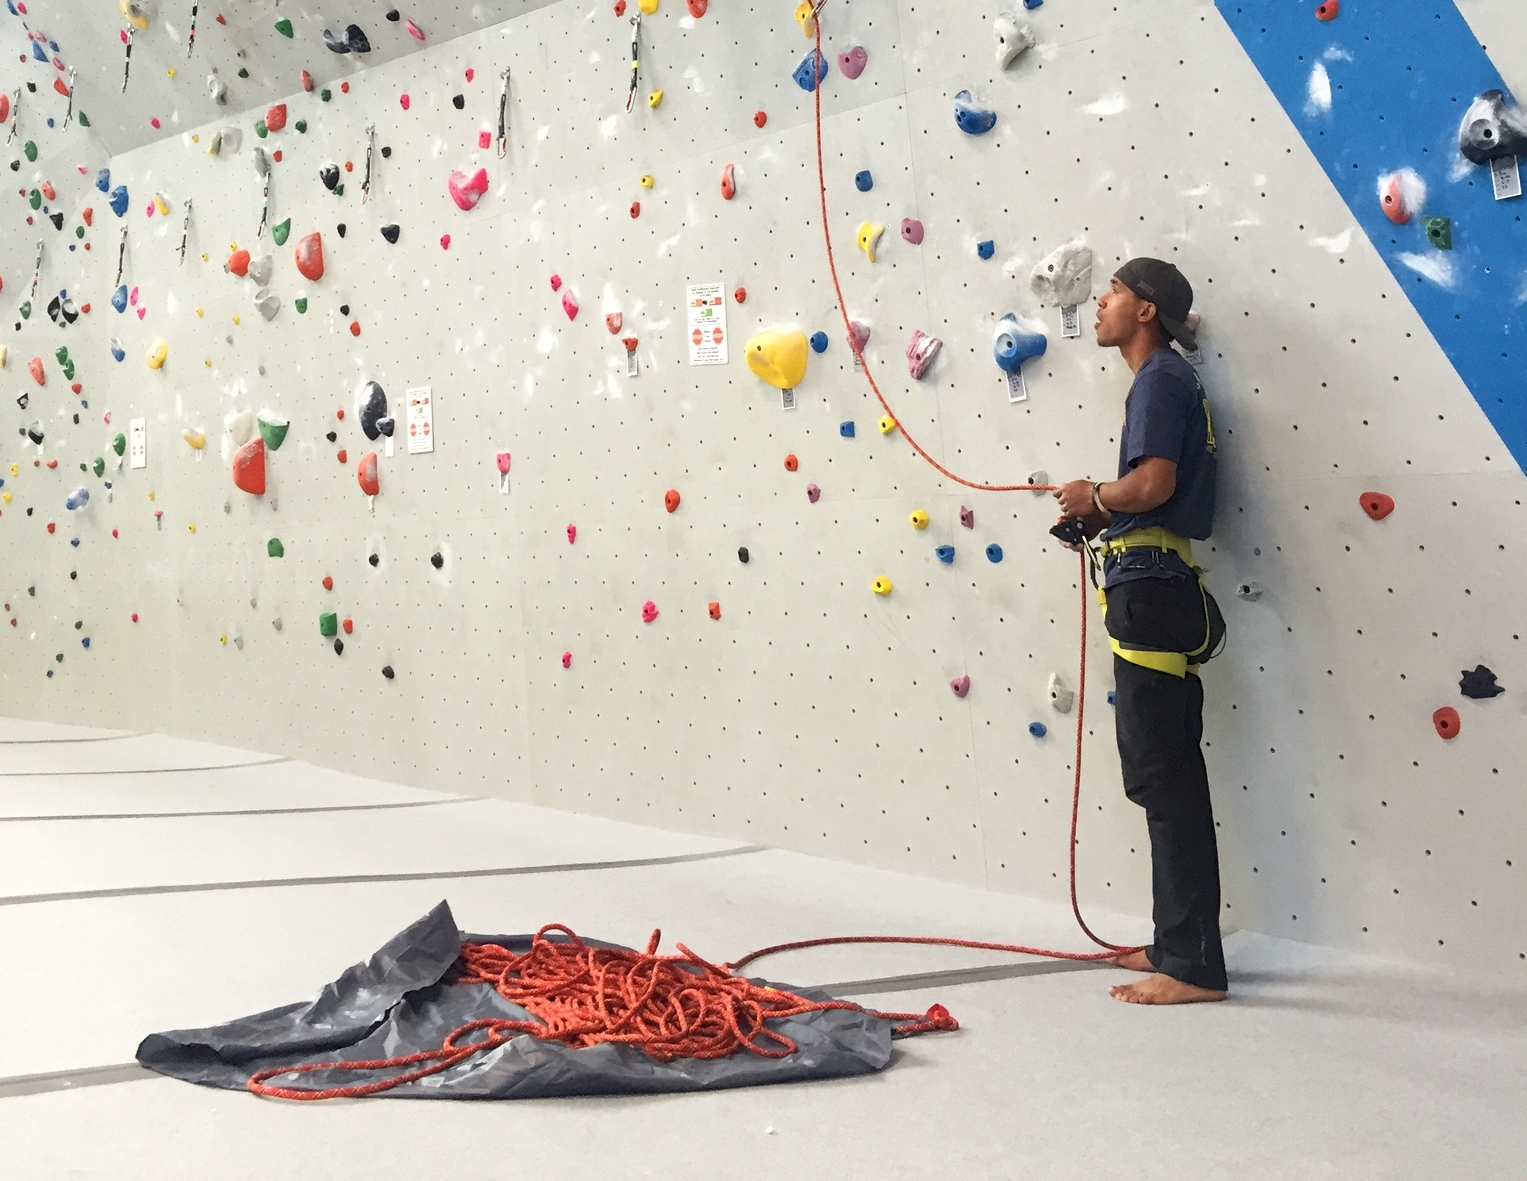 CWA Climbing Wall Instructor Certification